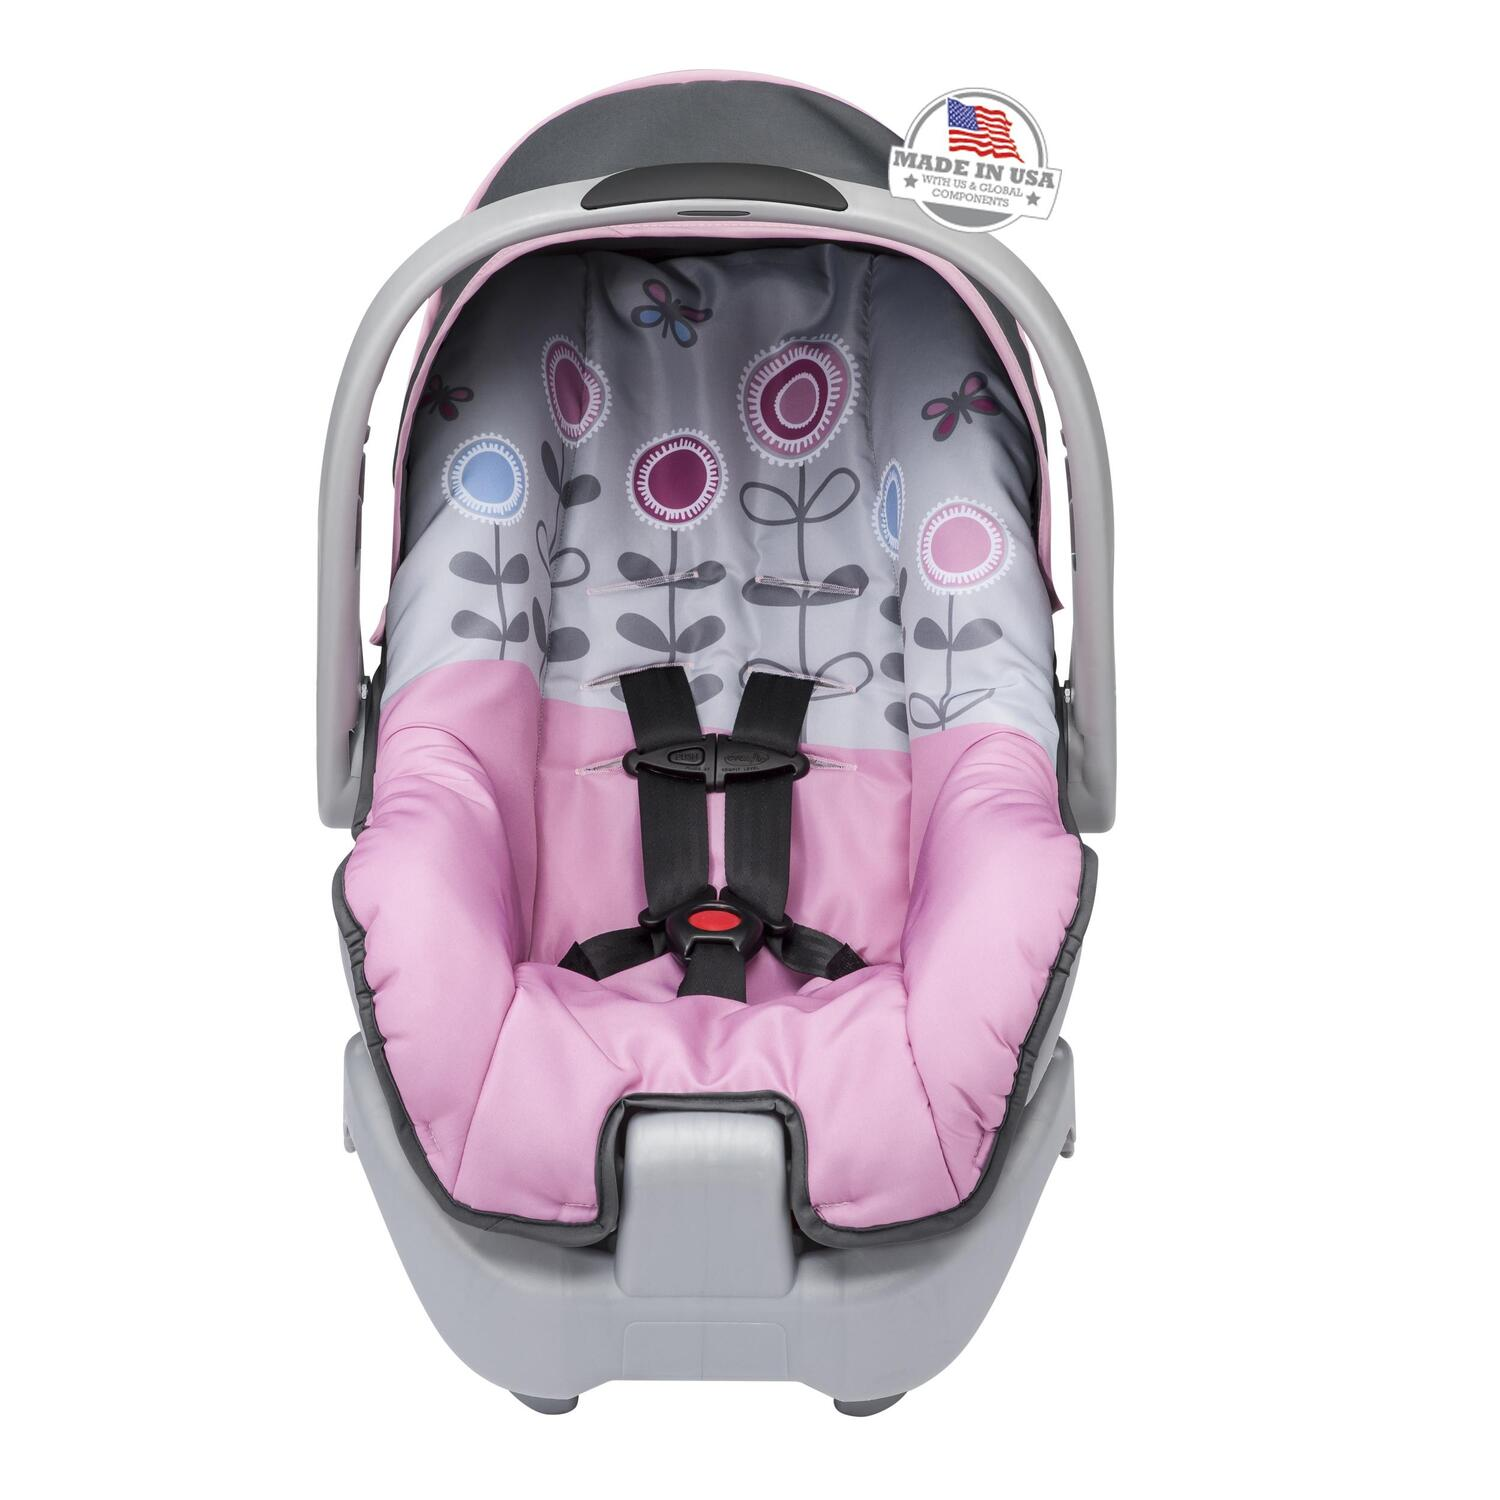 evenflo nurture infant car seat by oj commerce. Black Bedroom Furniture Sets. Home Design Ideas